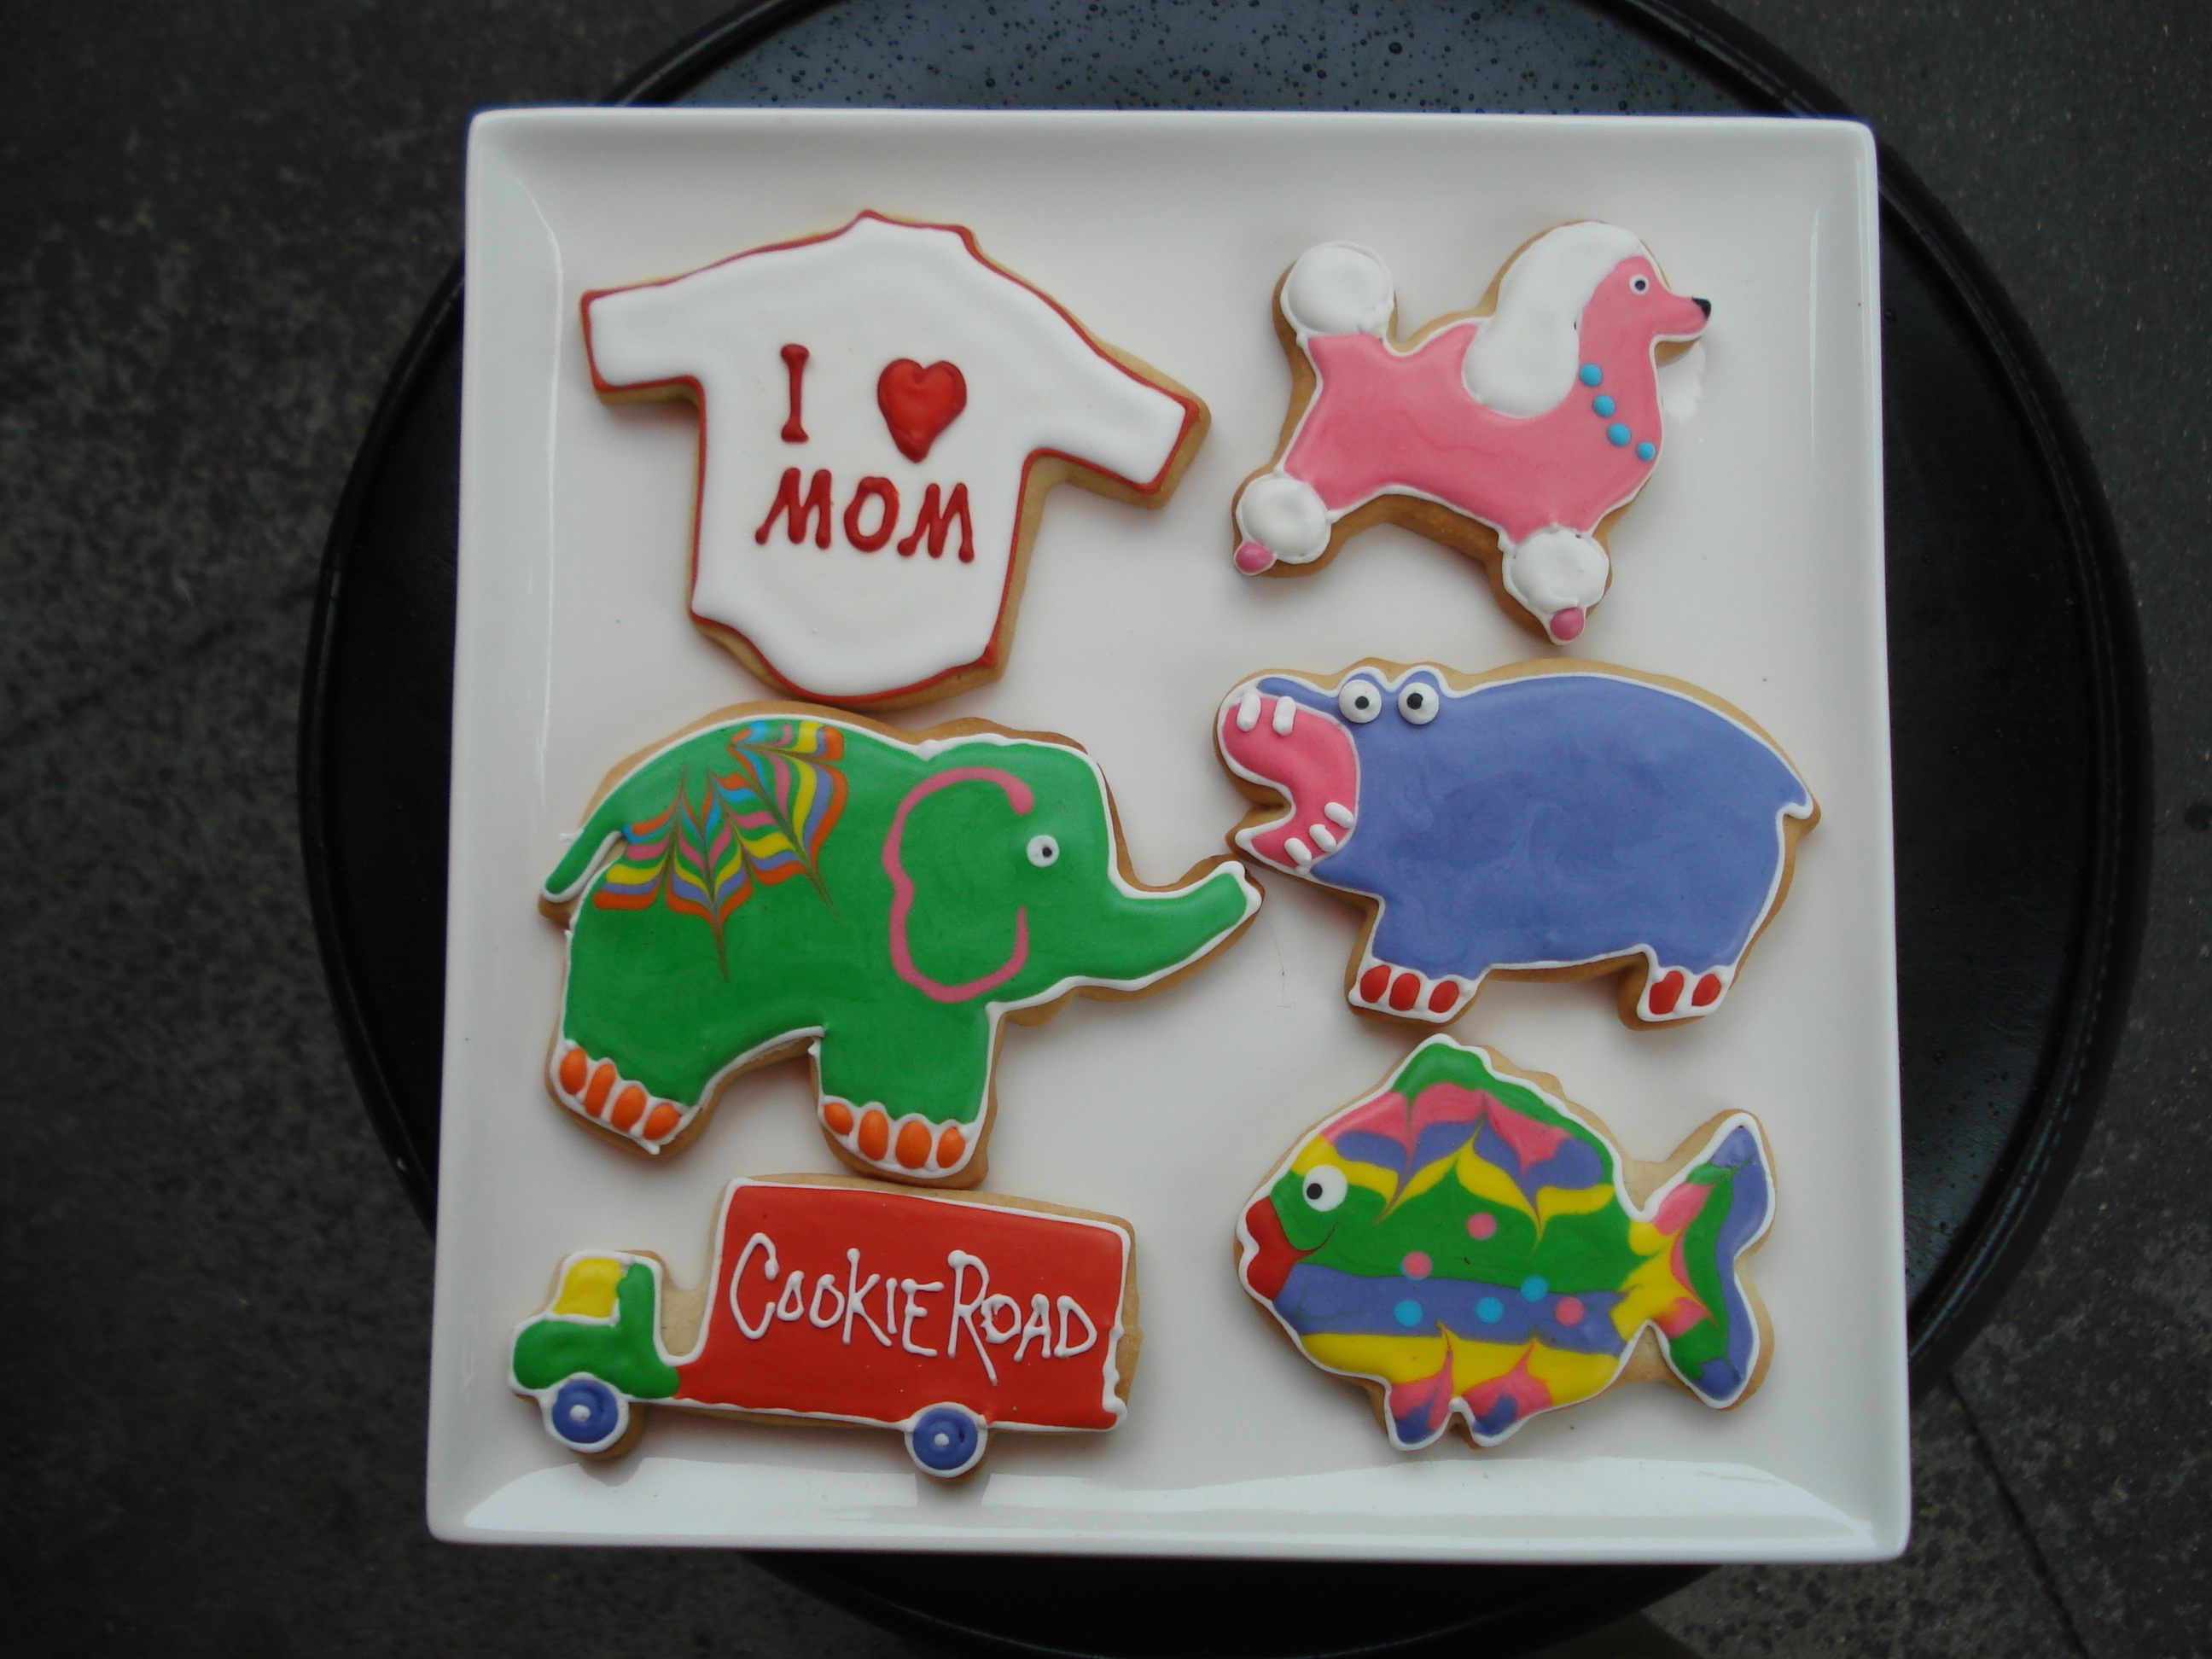 Decorated Cookies Cookie Road